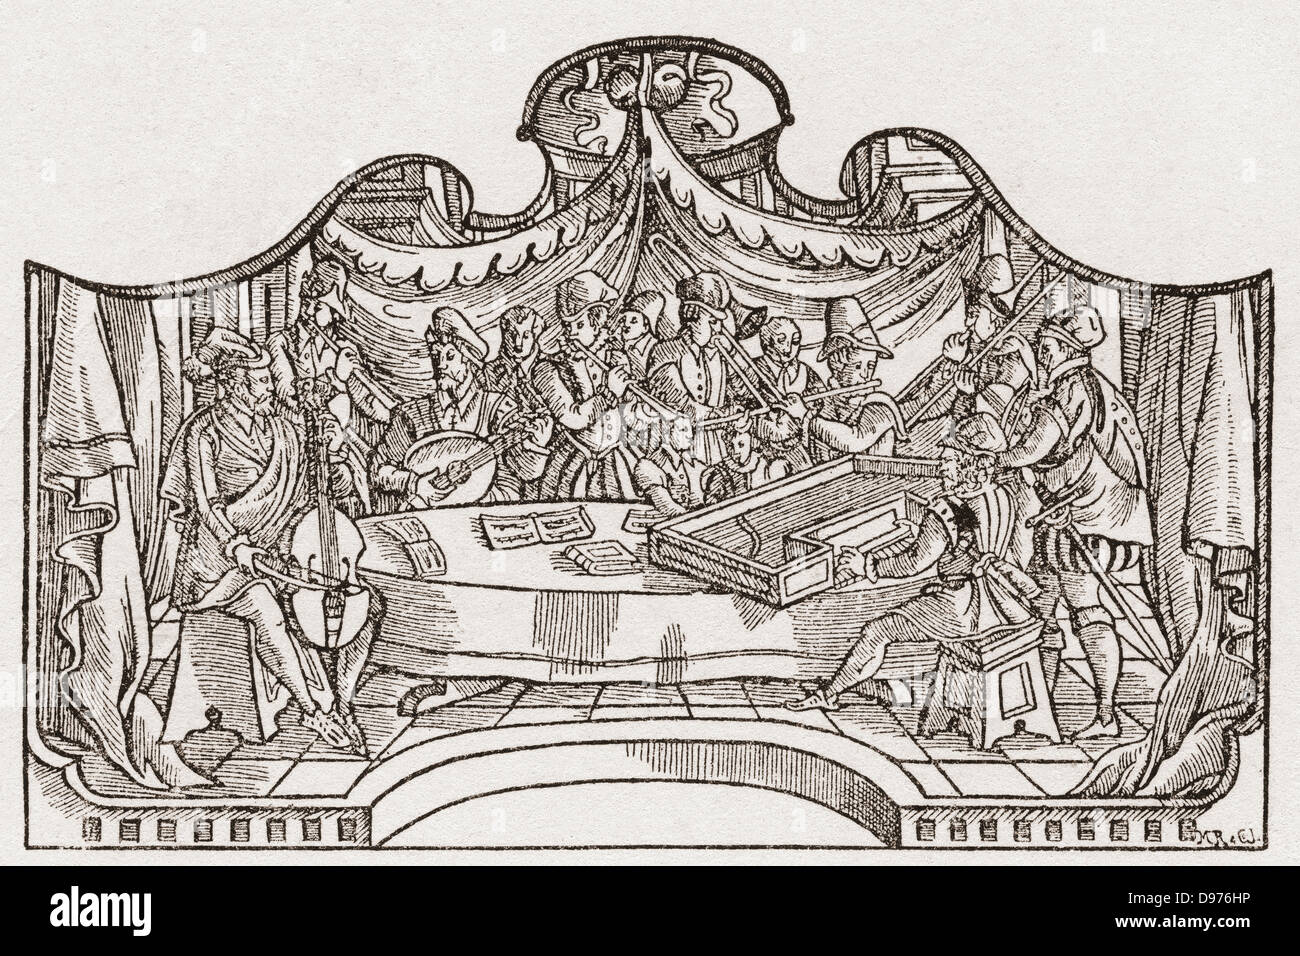 An orchestra from the Tudor period in England. From a contemporary print. - Stock Image